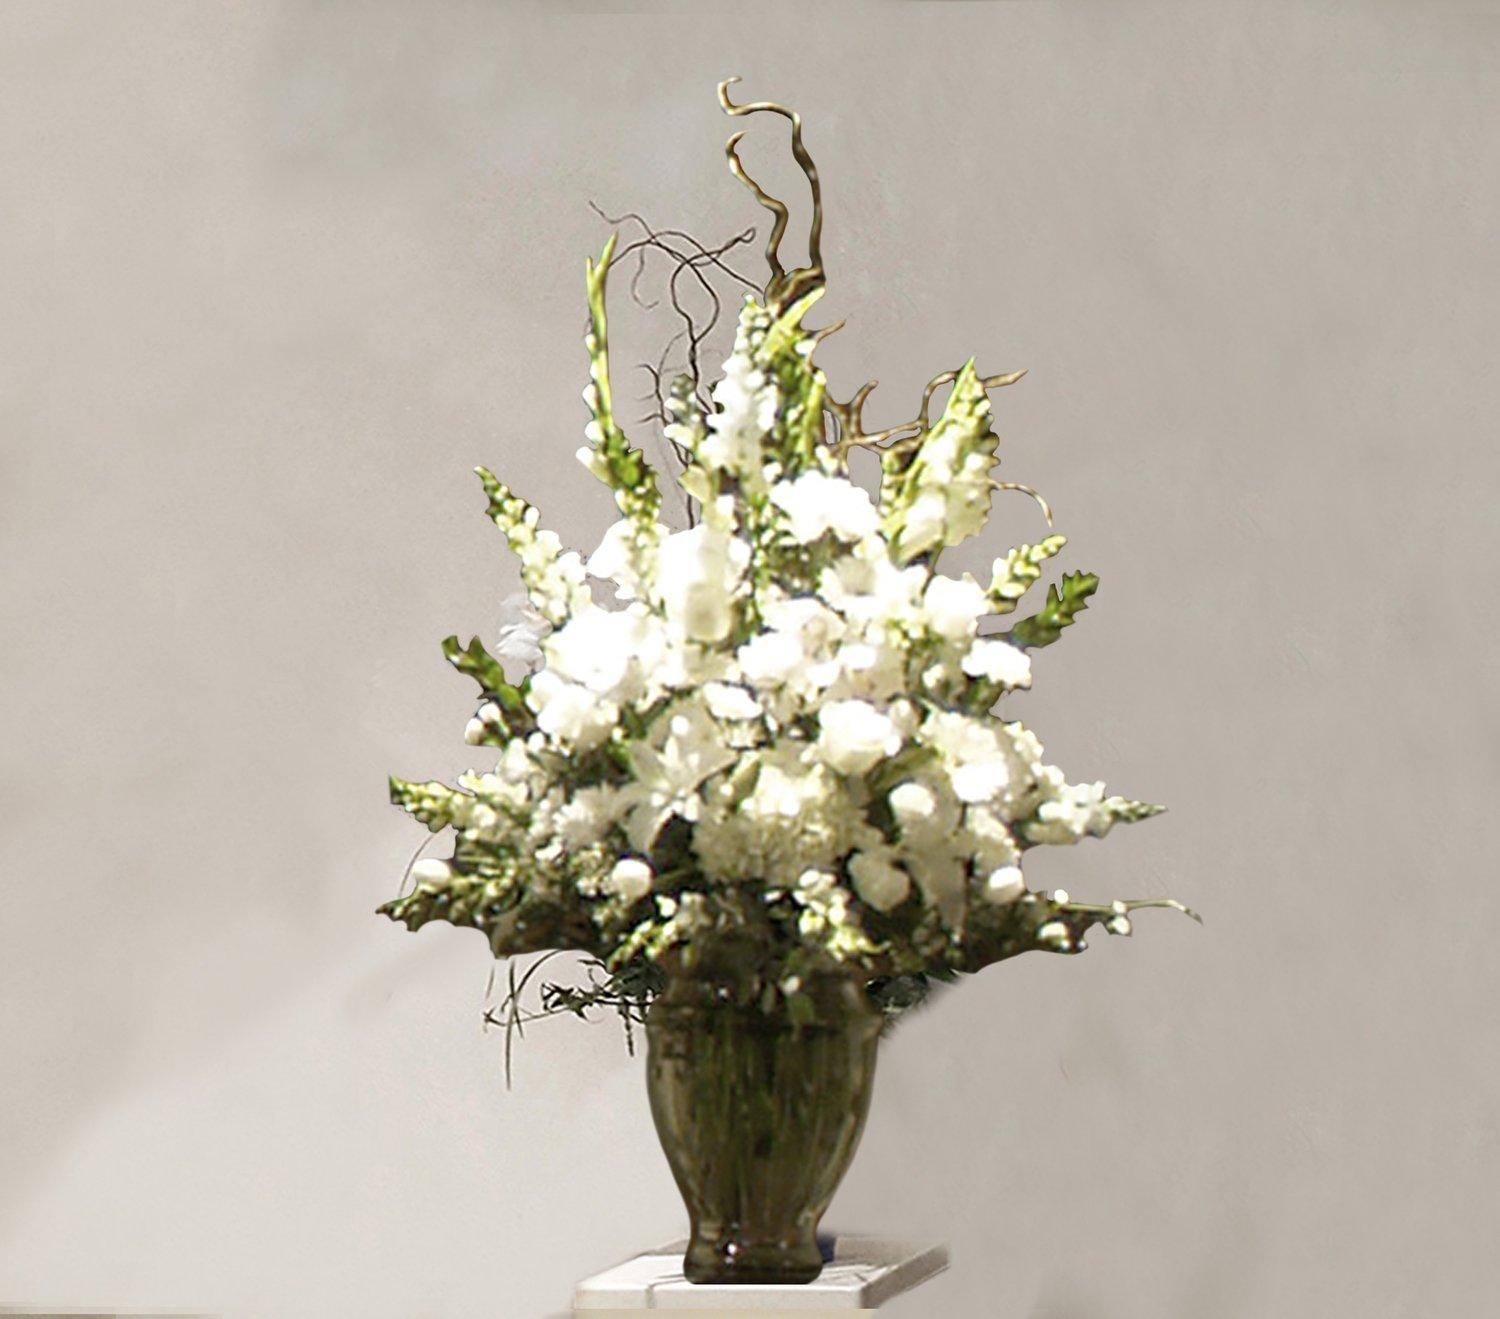 Funeral flower arrangements to honor loved ones lofendo flowers white flower mix grecian vase izmirmasajfo